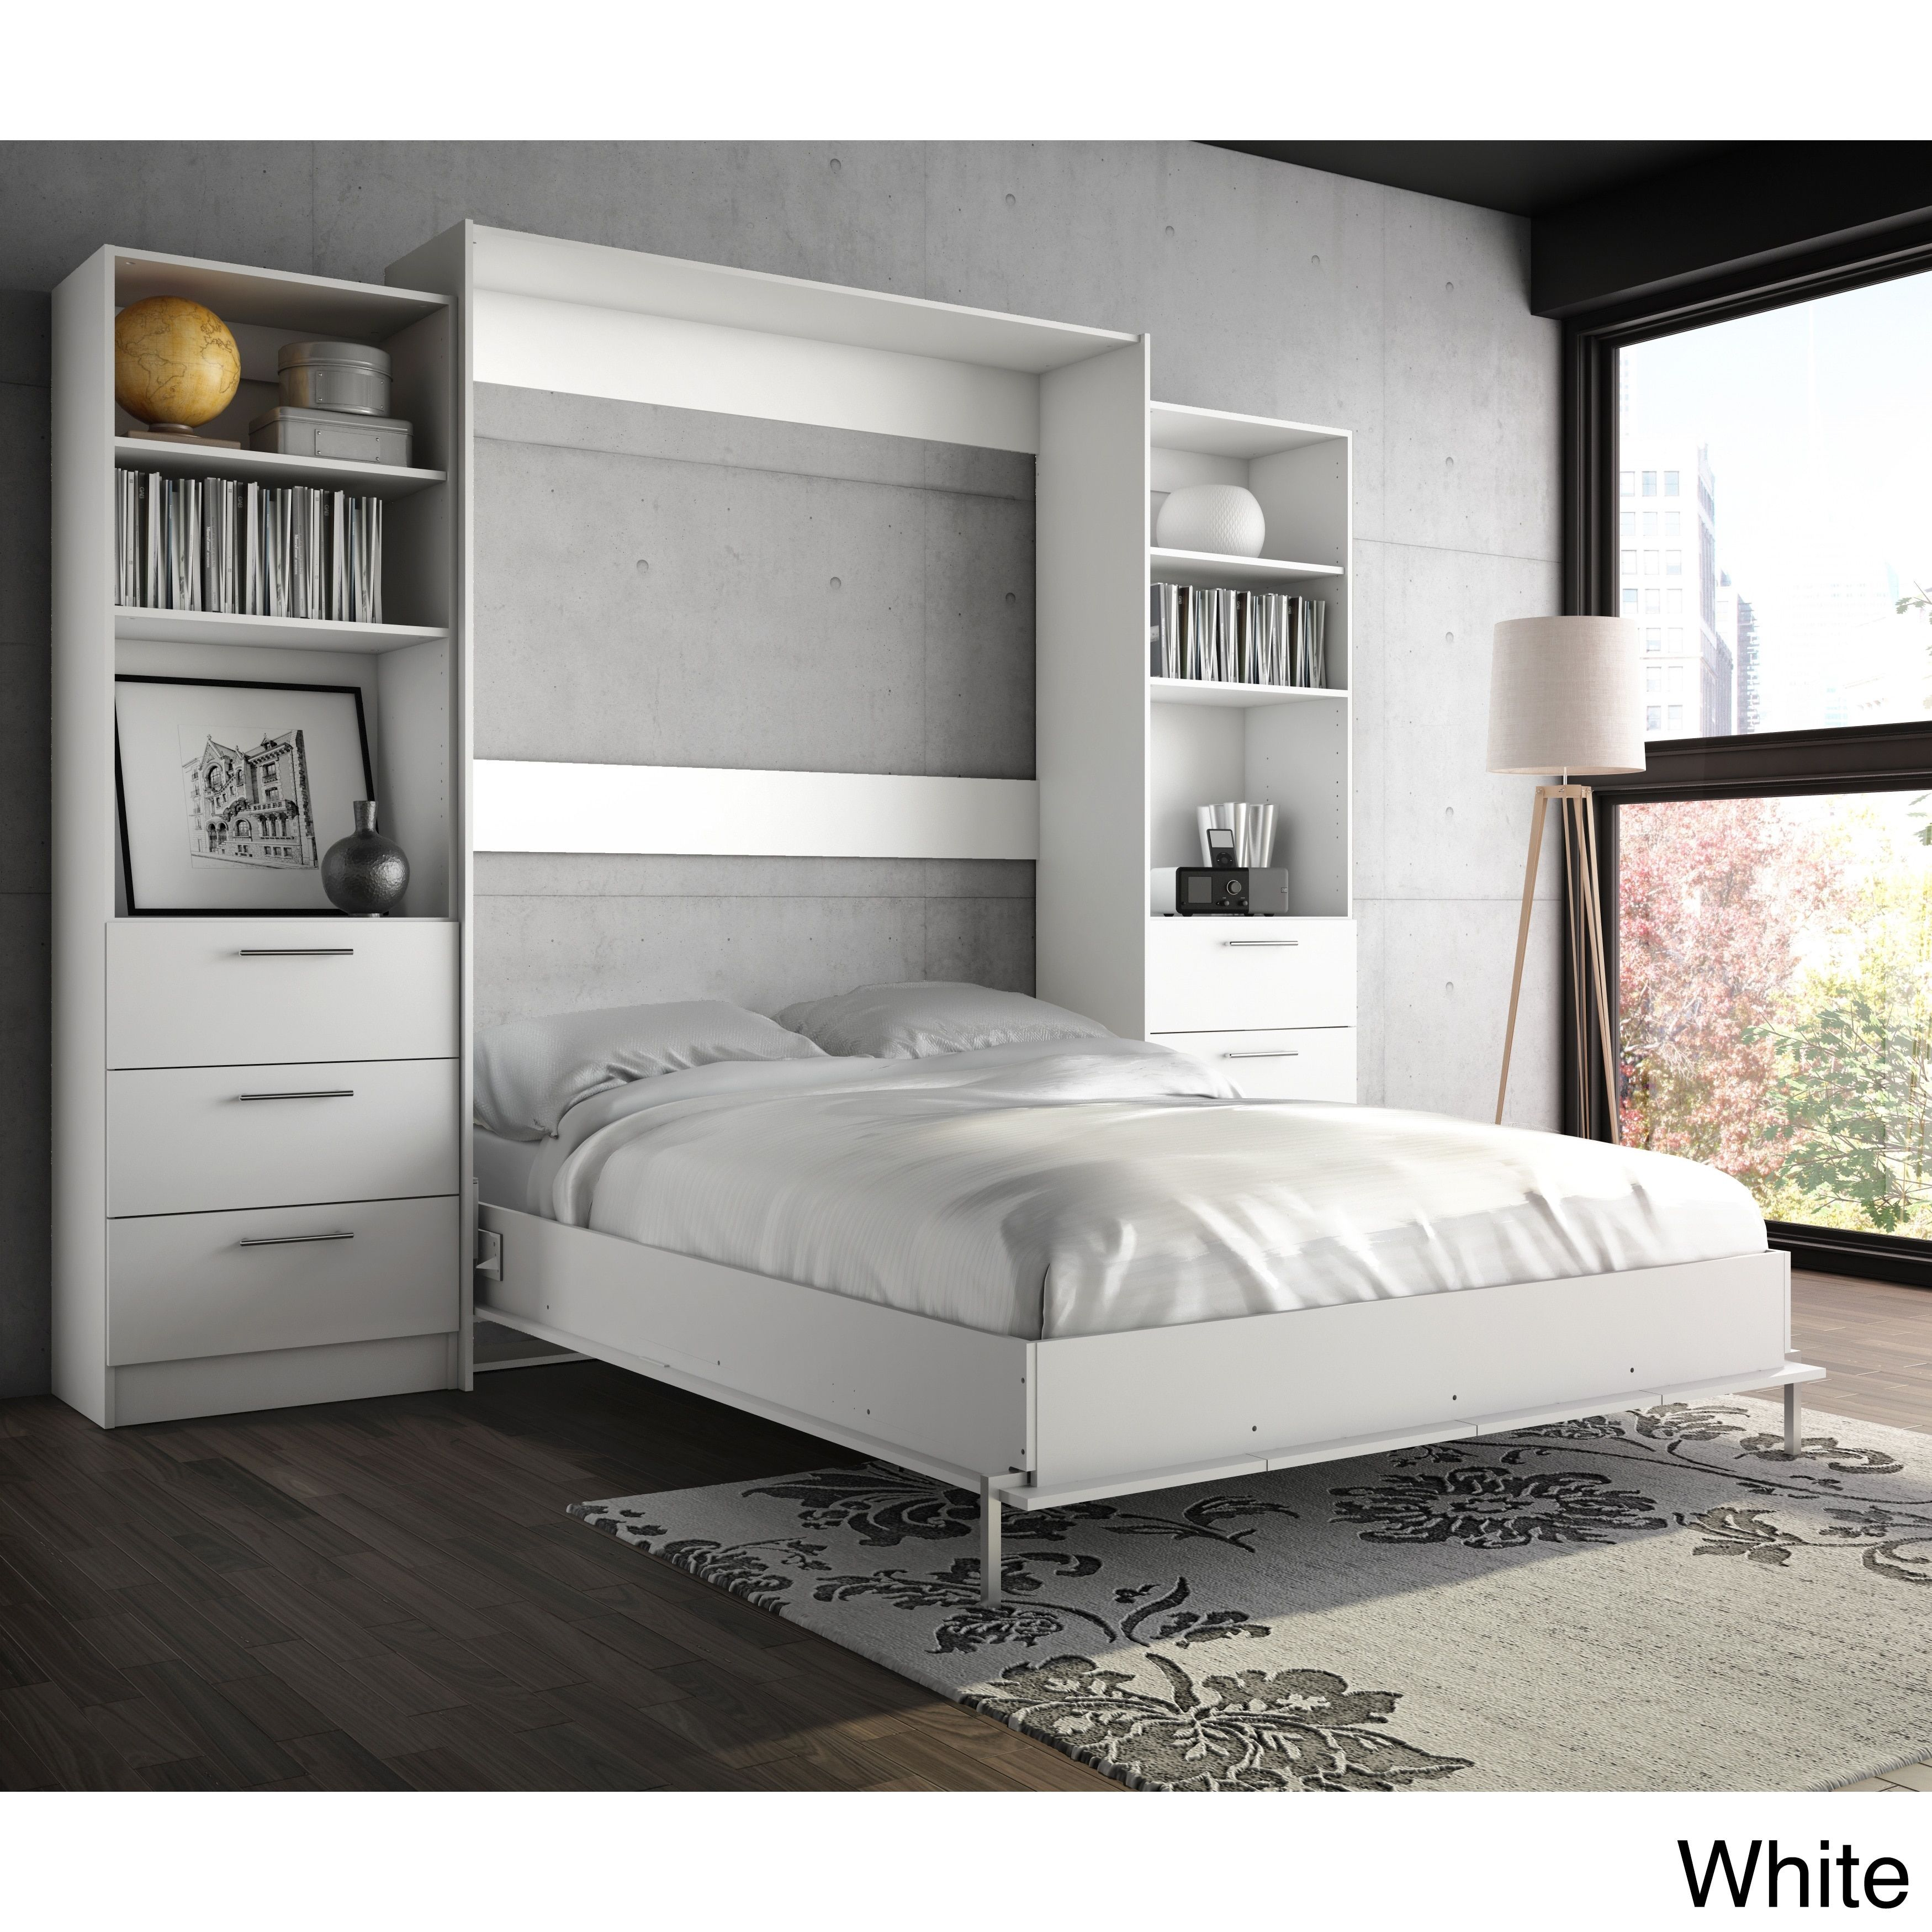 Wall bed outlet choice image home wall decoration ideas bedroom murphy beds direct murphys bed for sale wilding wall bed murphy beds direct for affordable interior bedroom decoration murphy beds direct murphys amipublicfo Choice Image